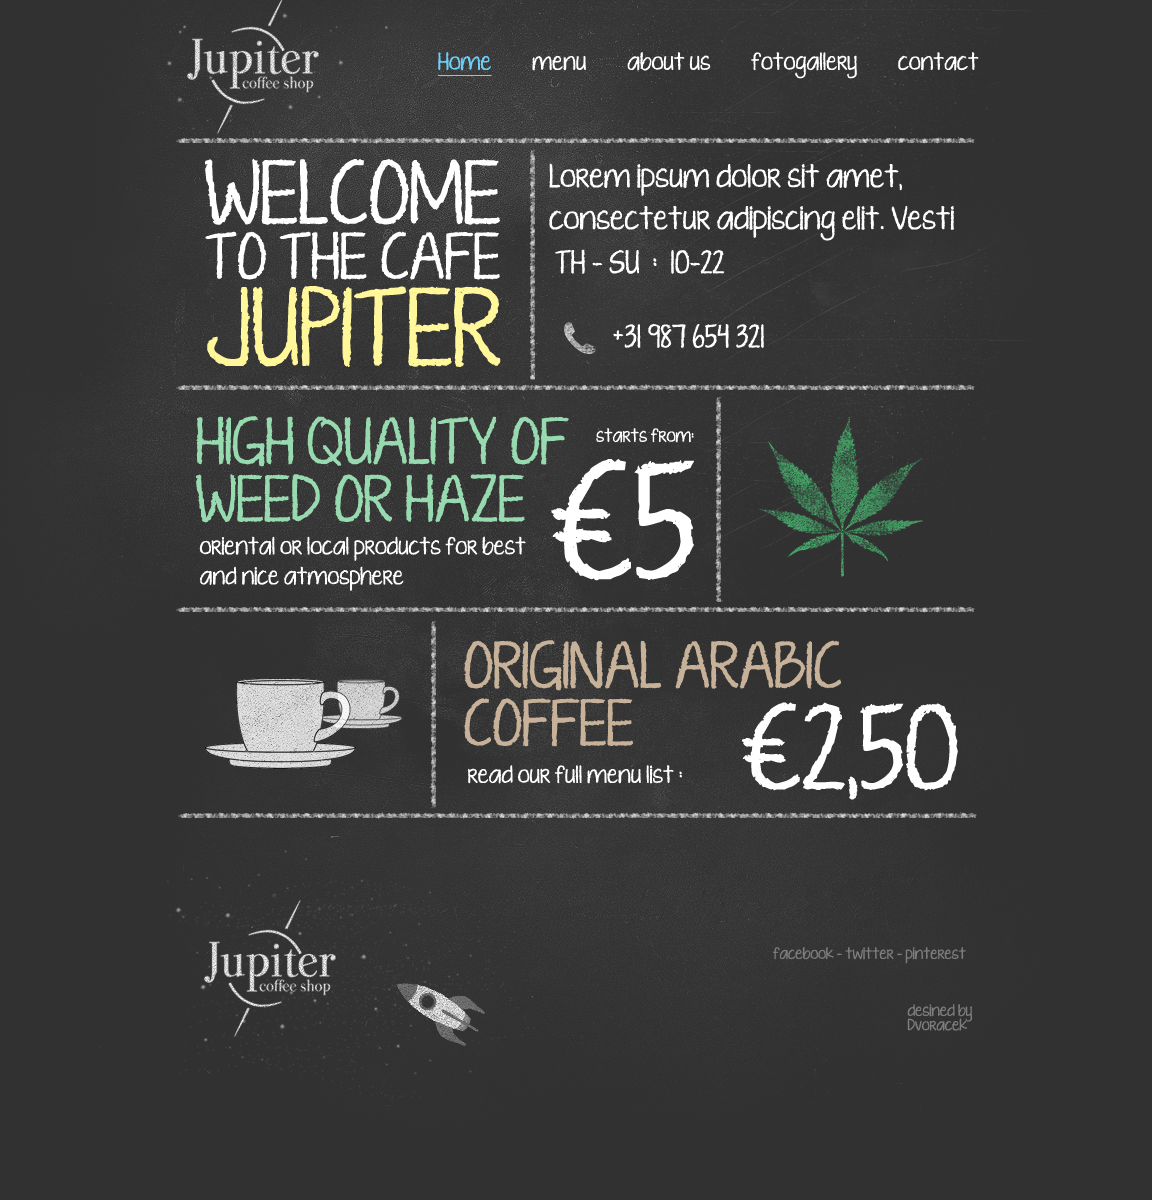 Jupiter coffee shop by igrenic